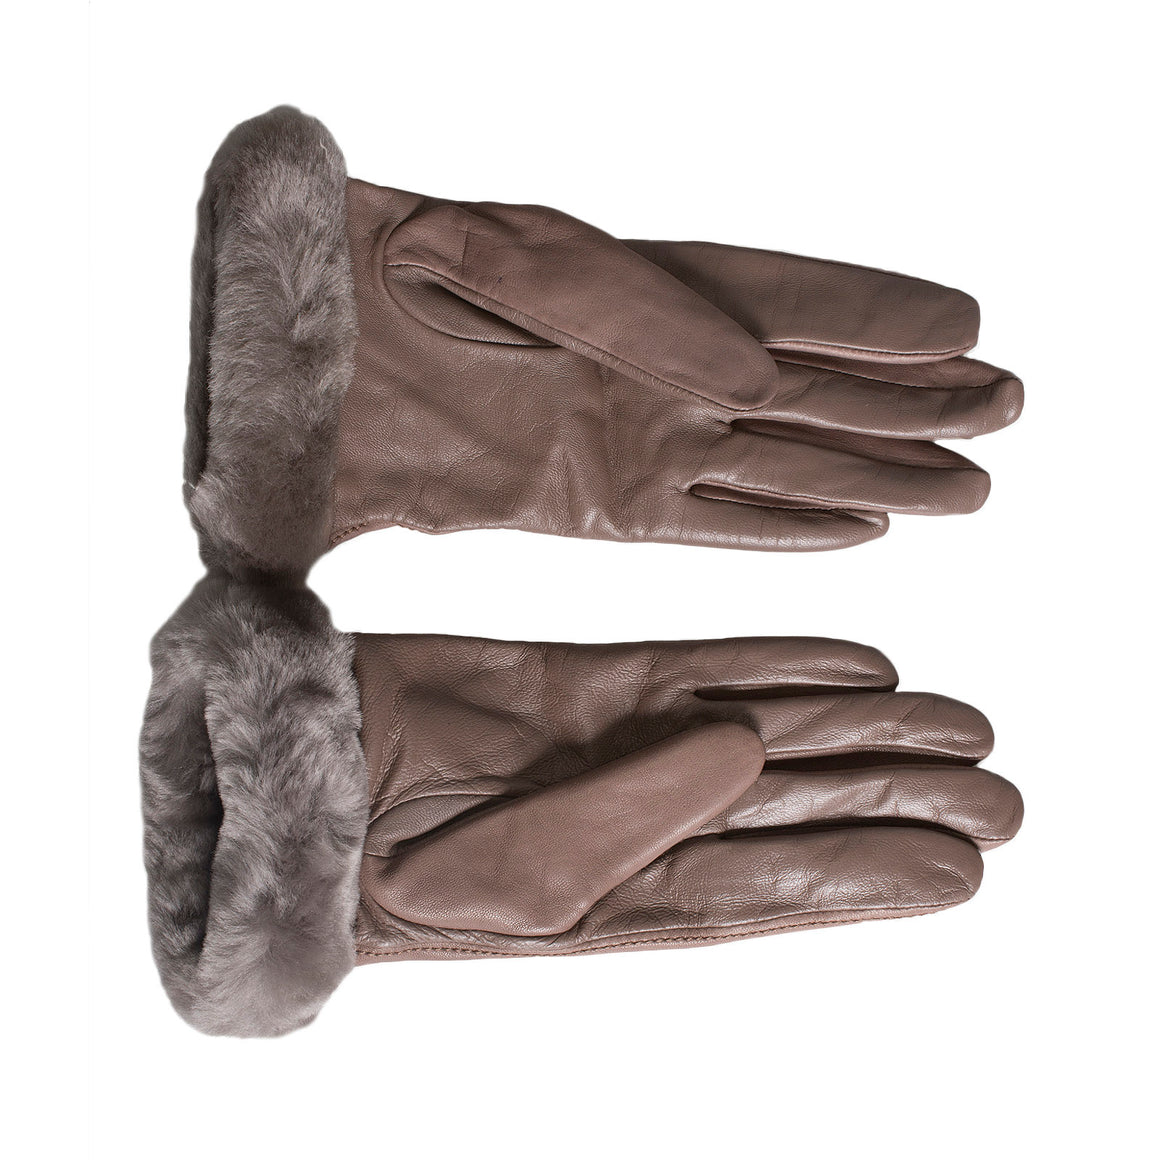 UGG Classic Leather Smart Stormy Grey Gloves - Women's